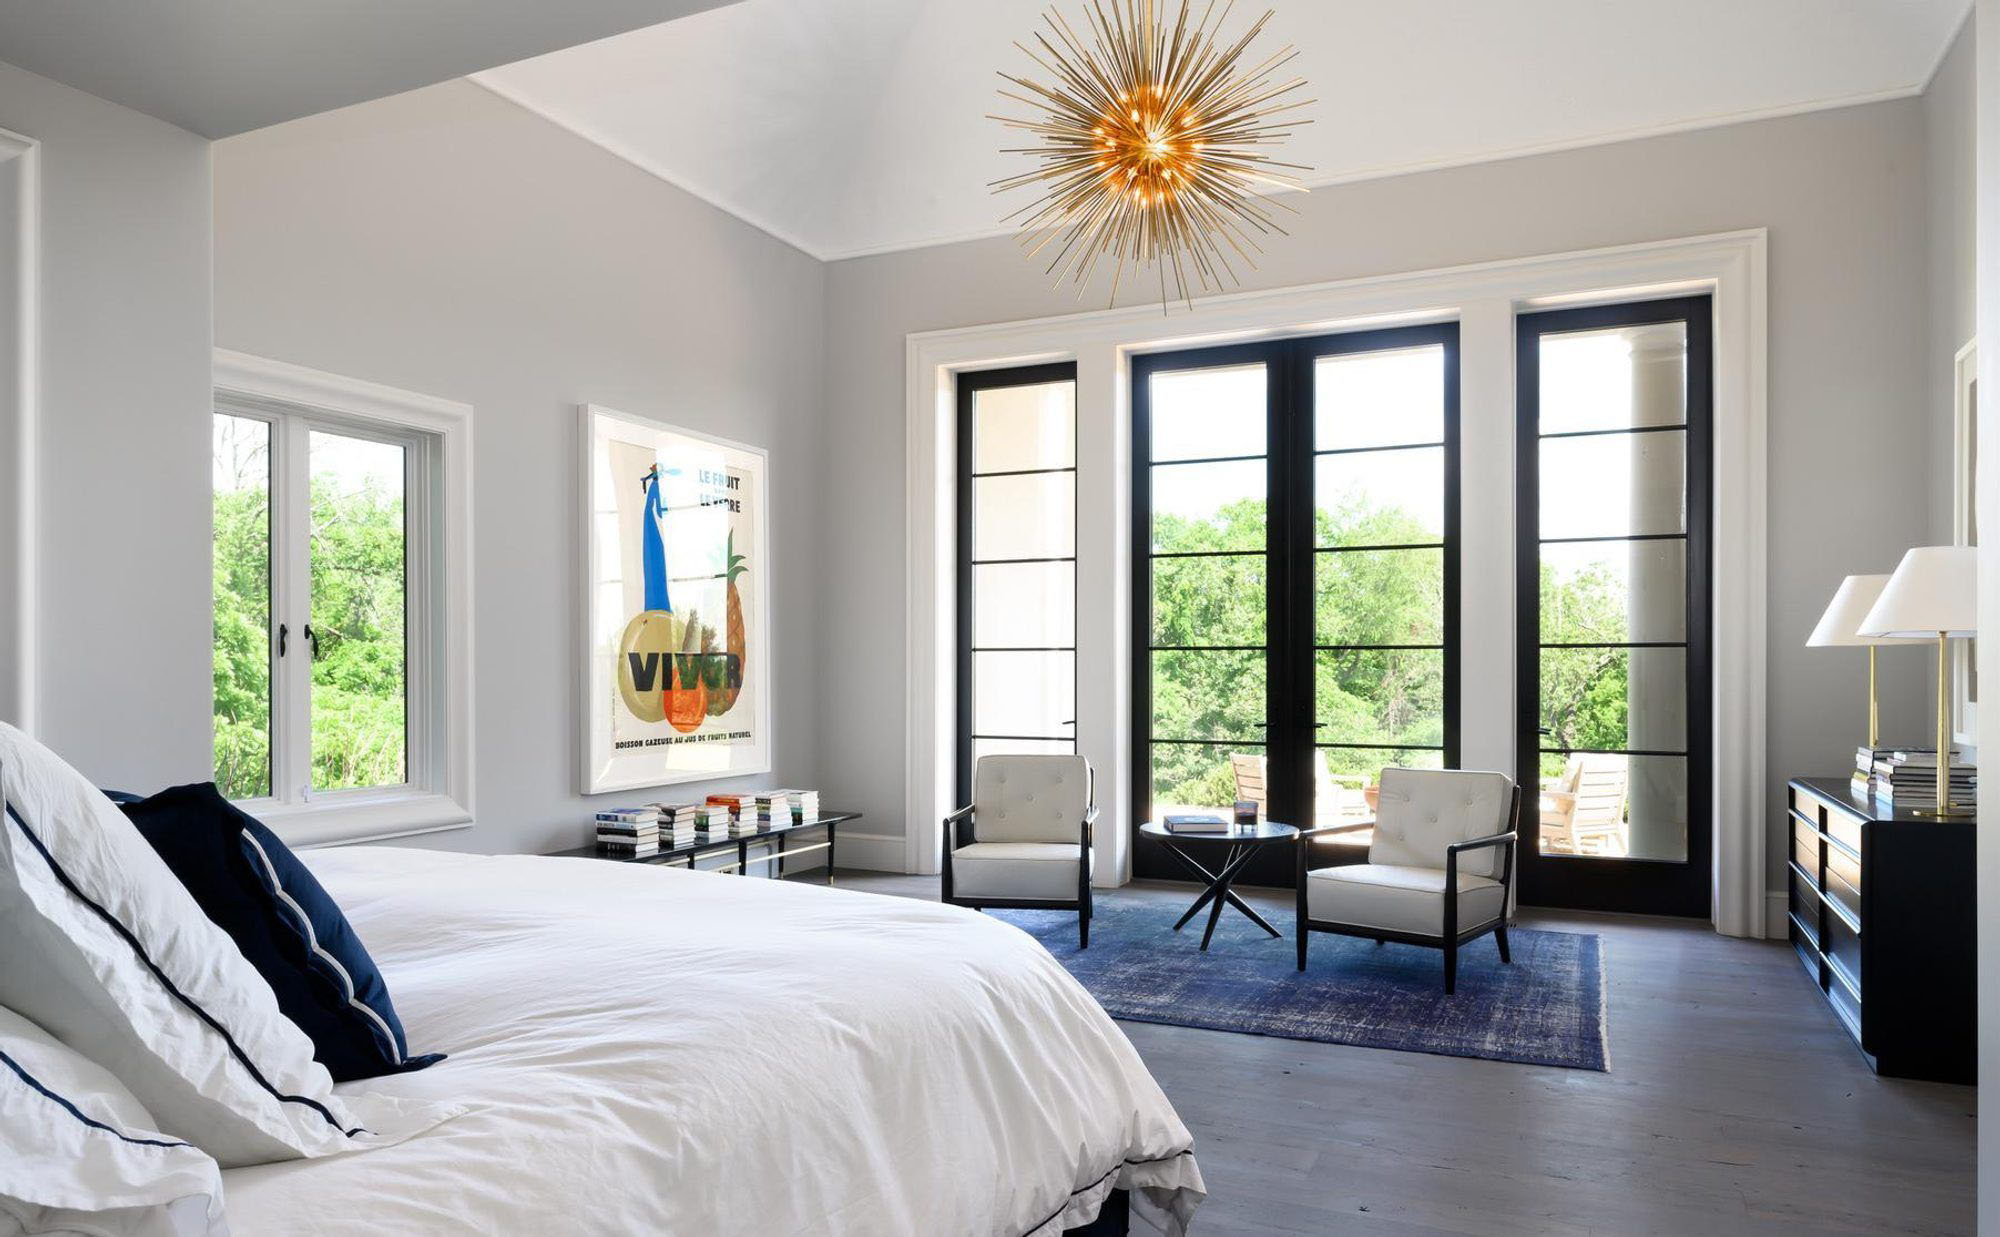 Modern style master bedroom with vaulted ceilings. white walls with black frame windows. vaulted ceilings pros and cons.